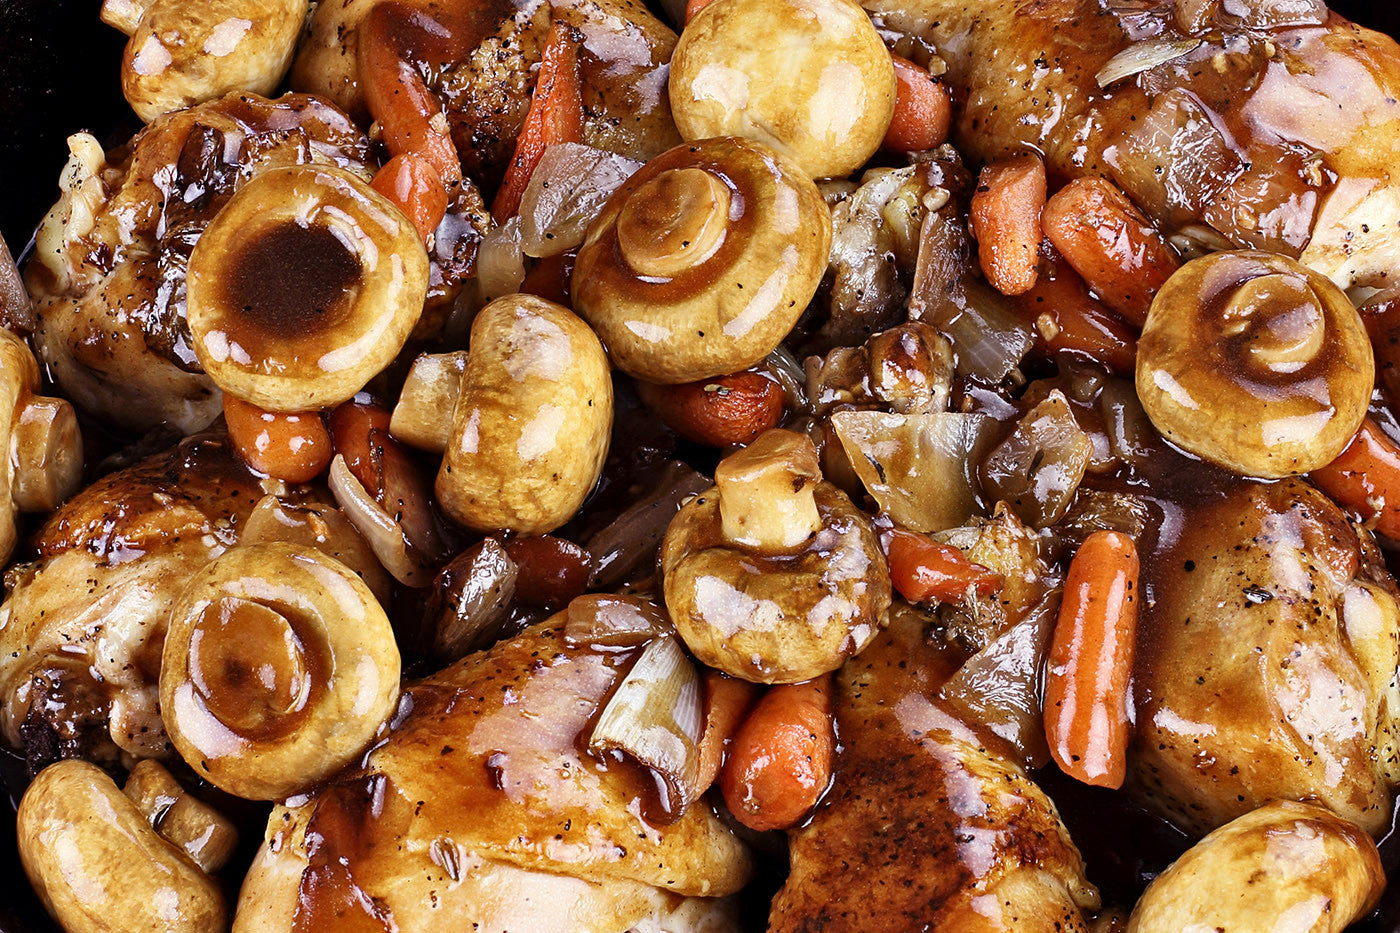 Coq au Vin French Chicken Stew in Red Wine Sauce